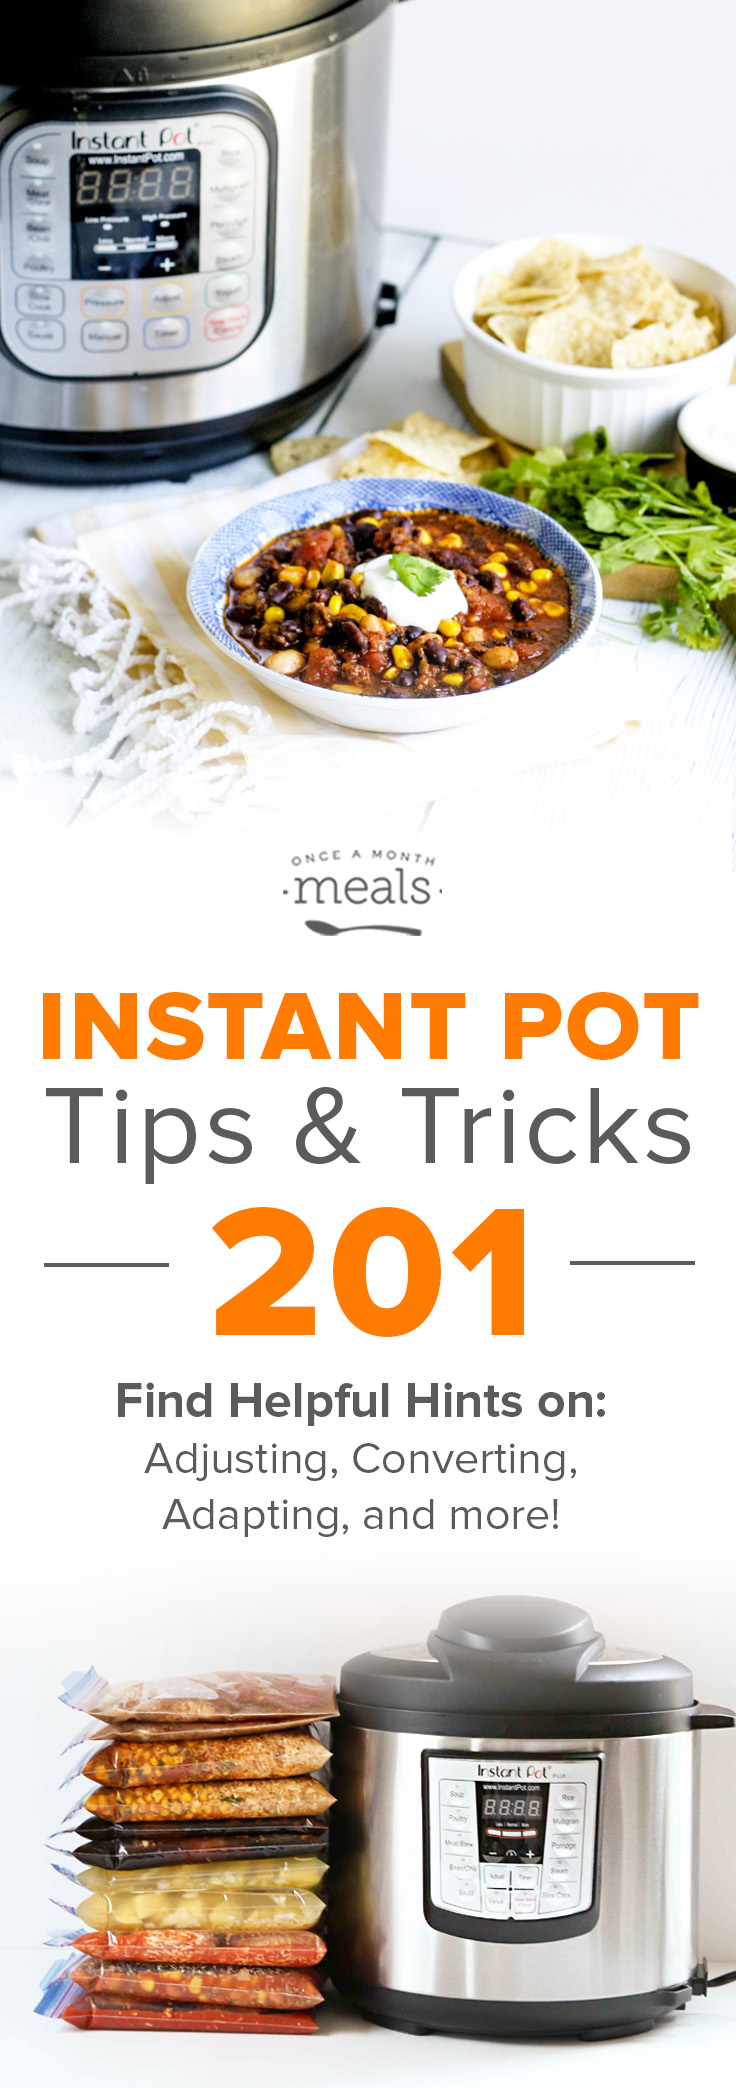 We are sharing our advanced Instant Pot tips and tricks on how to cook your freezer meals from frozen in the Instant Pot!